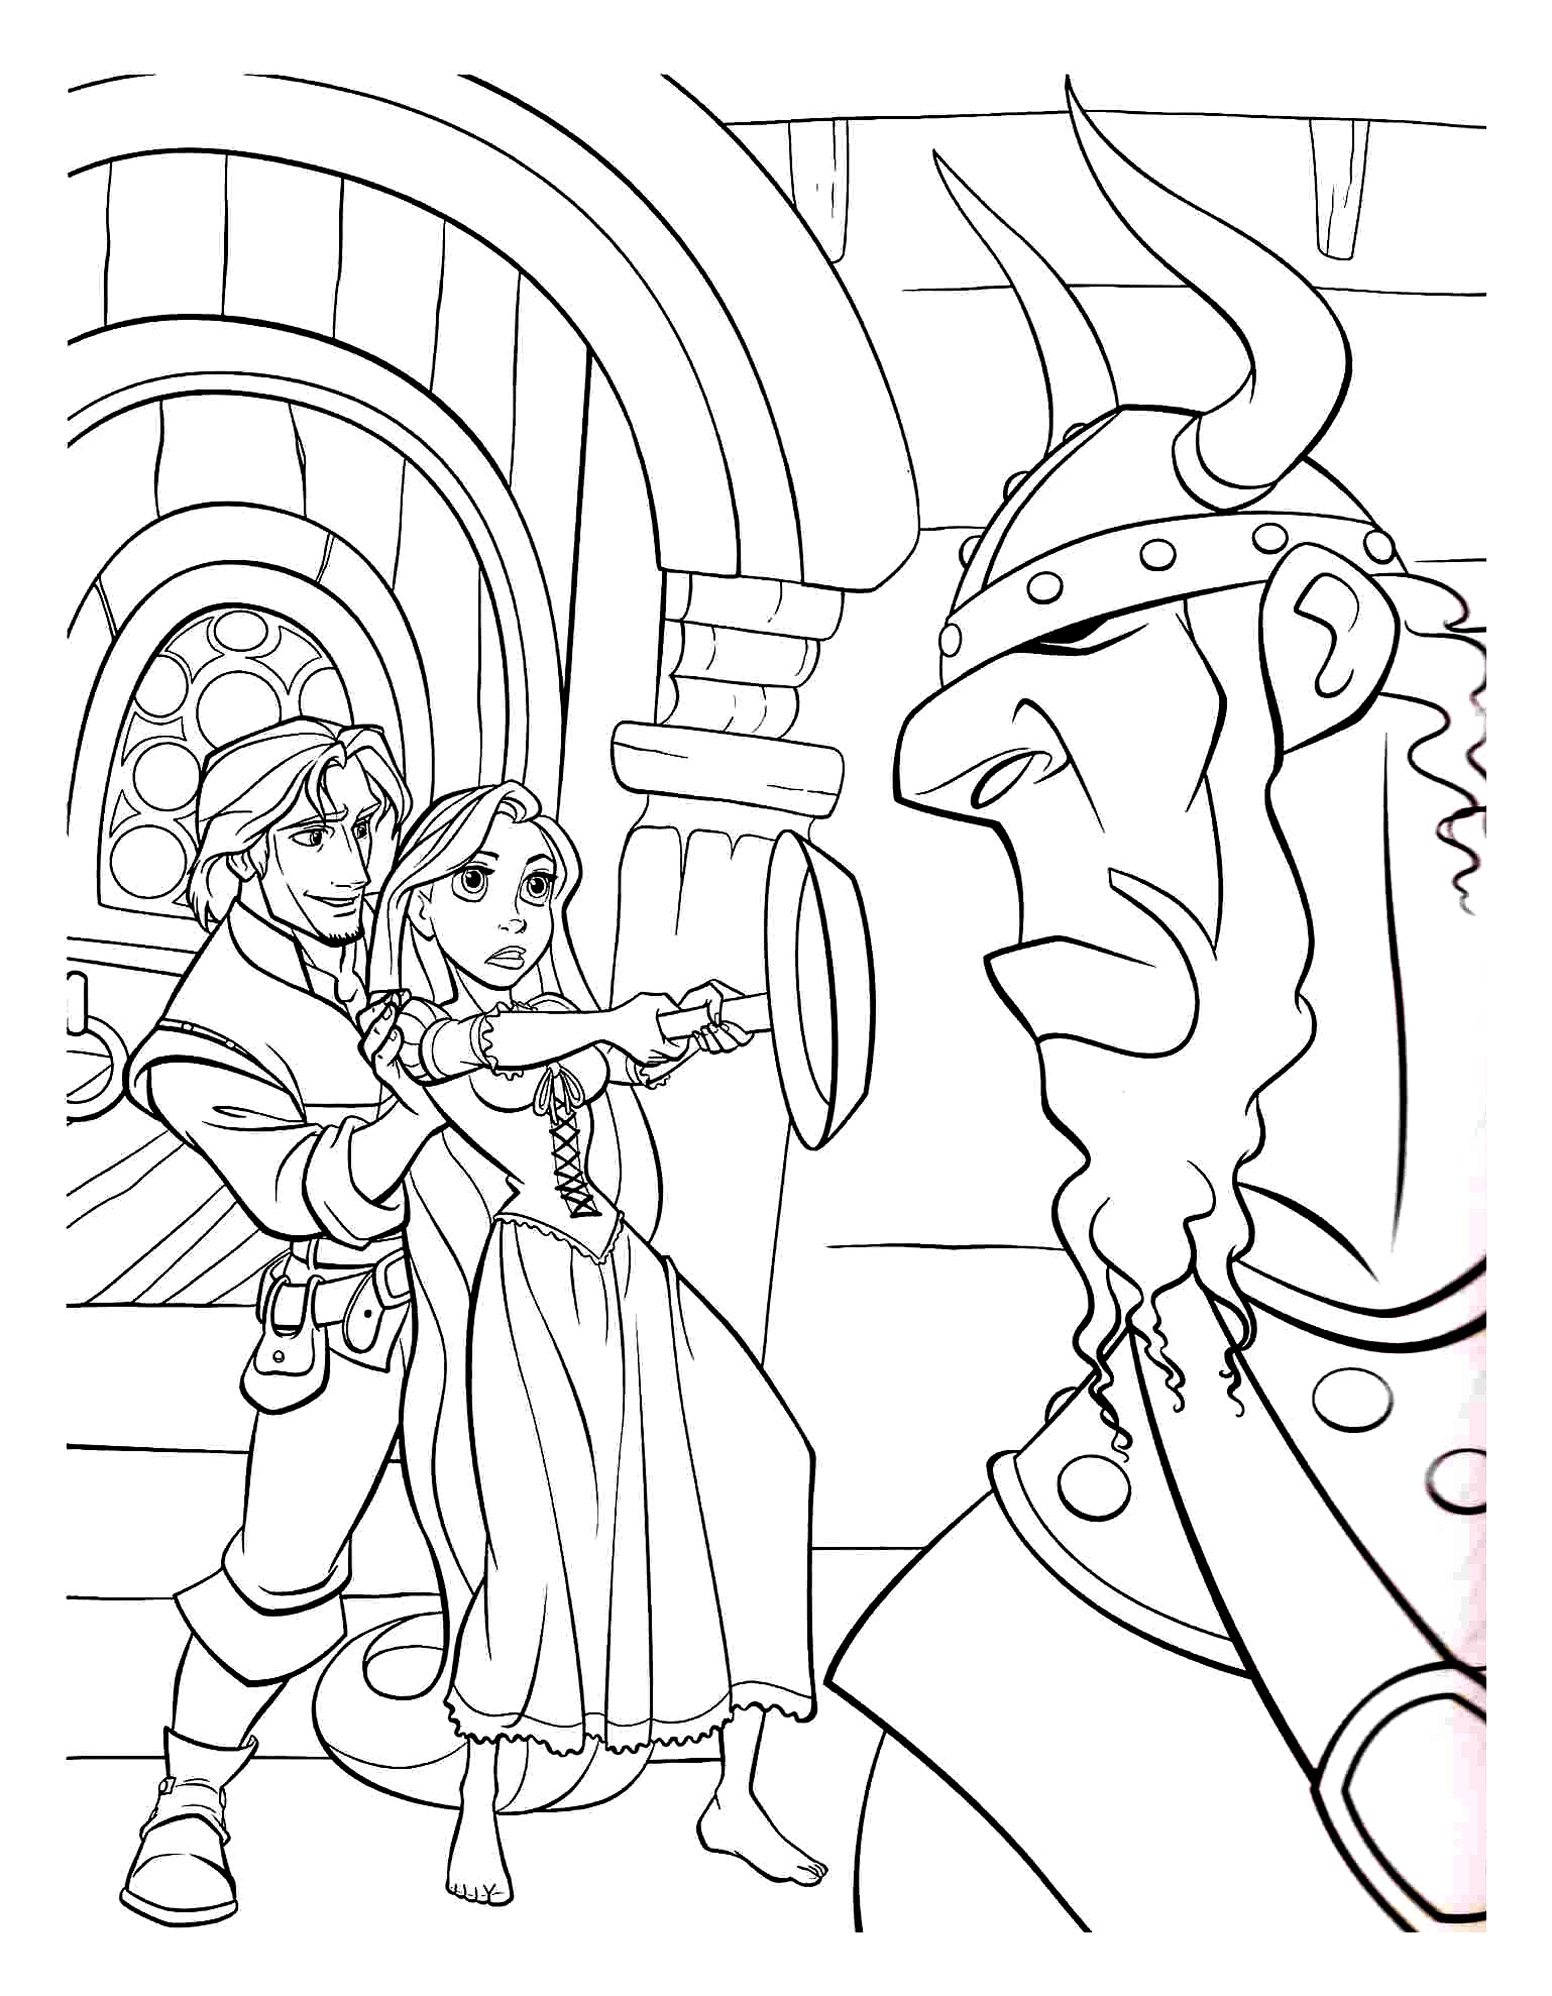 Rapunzel and Flynn Rider with the Weapon Frying Pan Tangled Detailed Adult Coloring Page